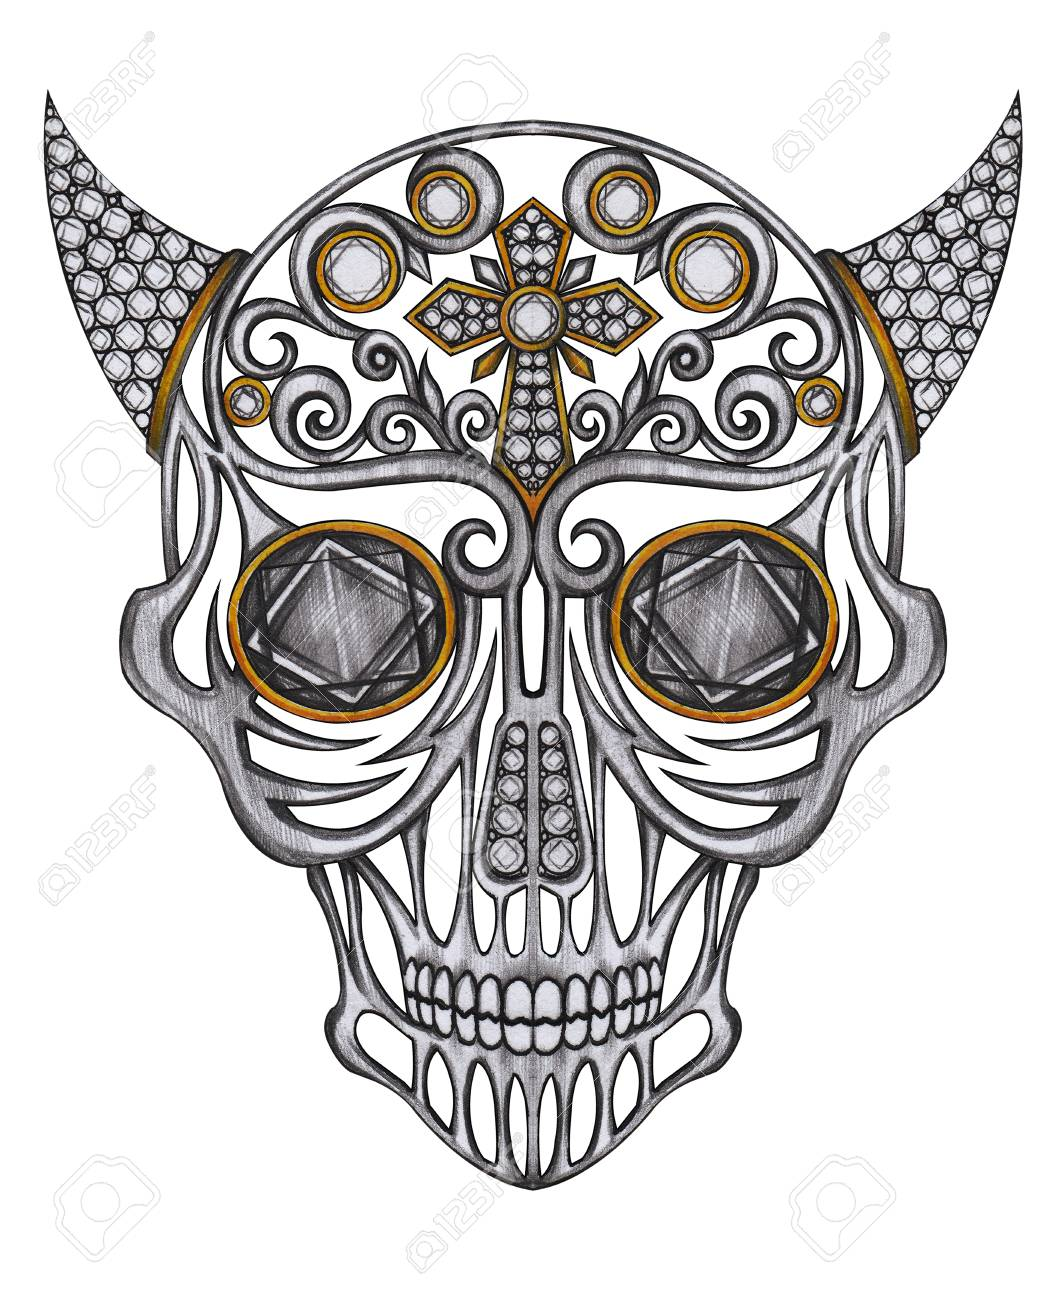 1064x1300 Art Graphic And Gems Mix Devil Skull. Hand Pencil Drawing